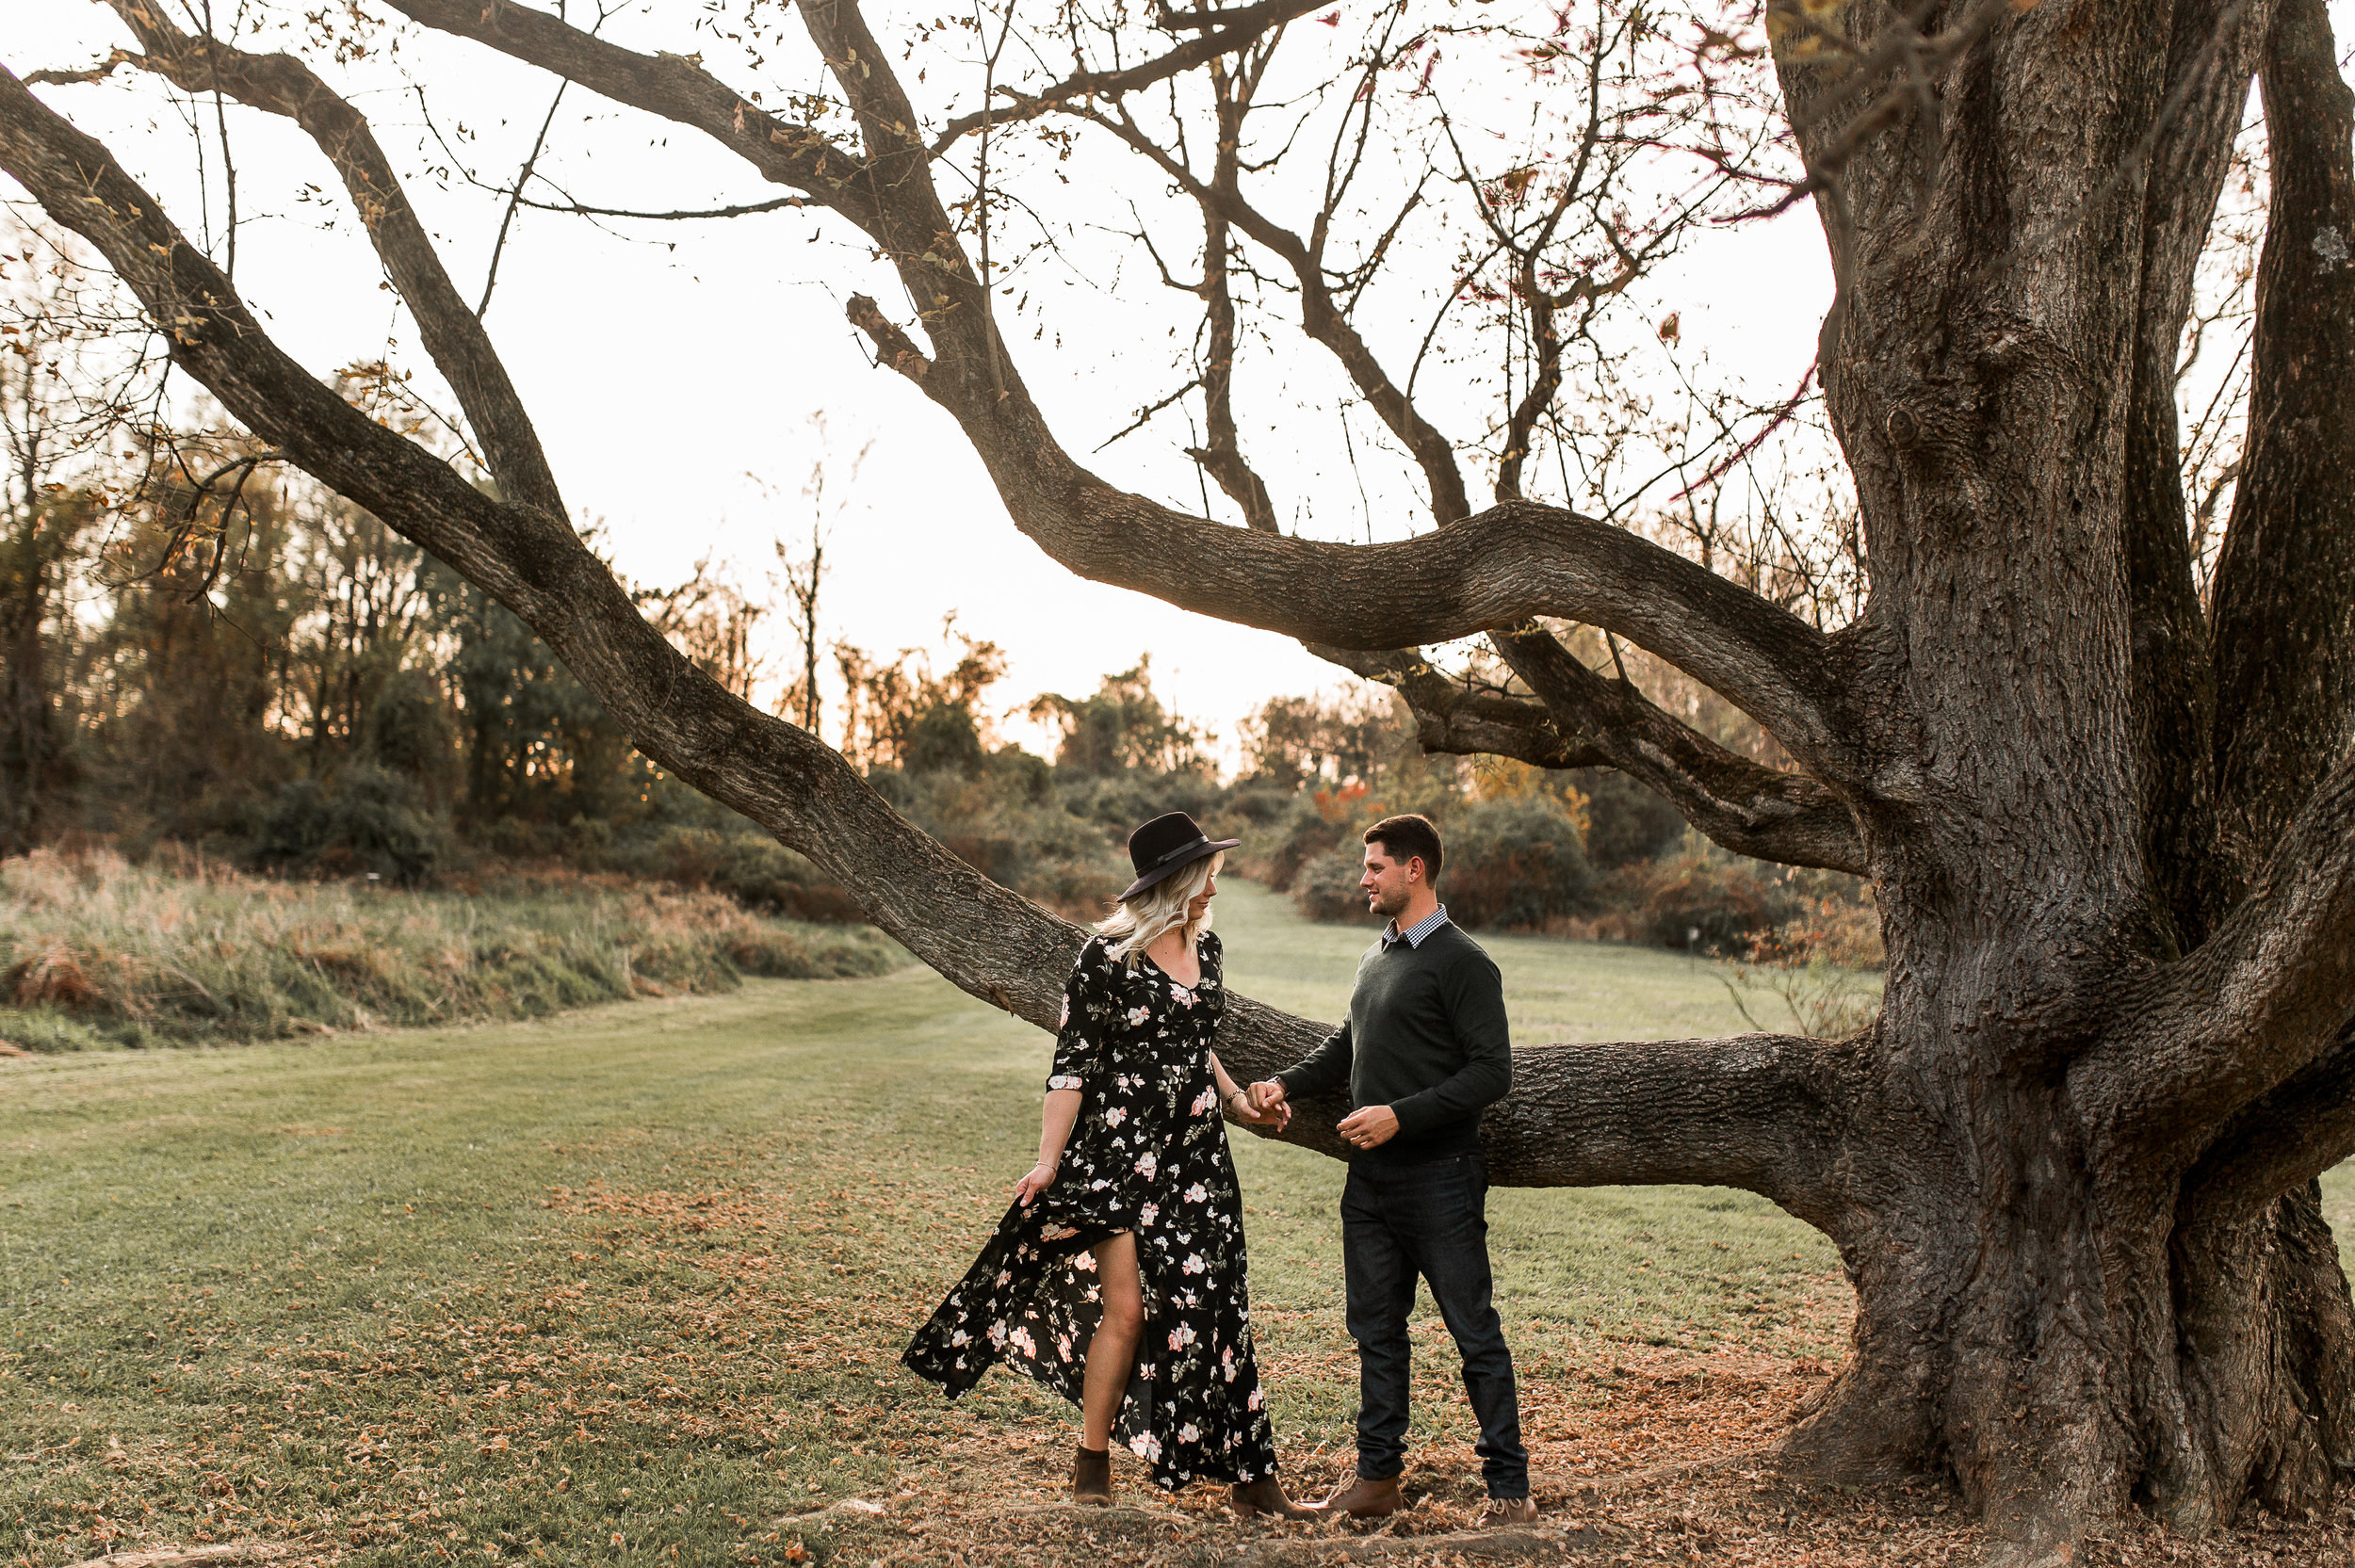 nicole-daacke-photography-carefree-bohemian-lancaster-pa-pennsylvania-engagement-photos-engagement-session-golden-sunset-adventure-session-in-lancaster-pa-lancaster-pa-outdoor-wedding-photographer-18.jpg